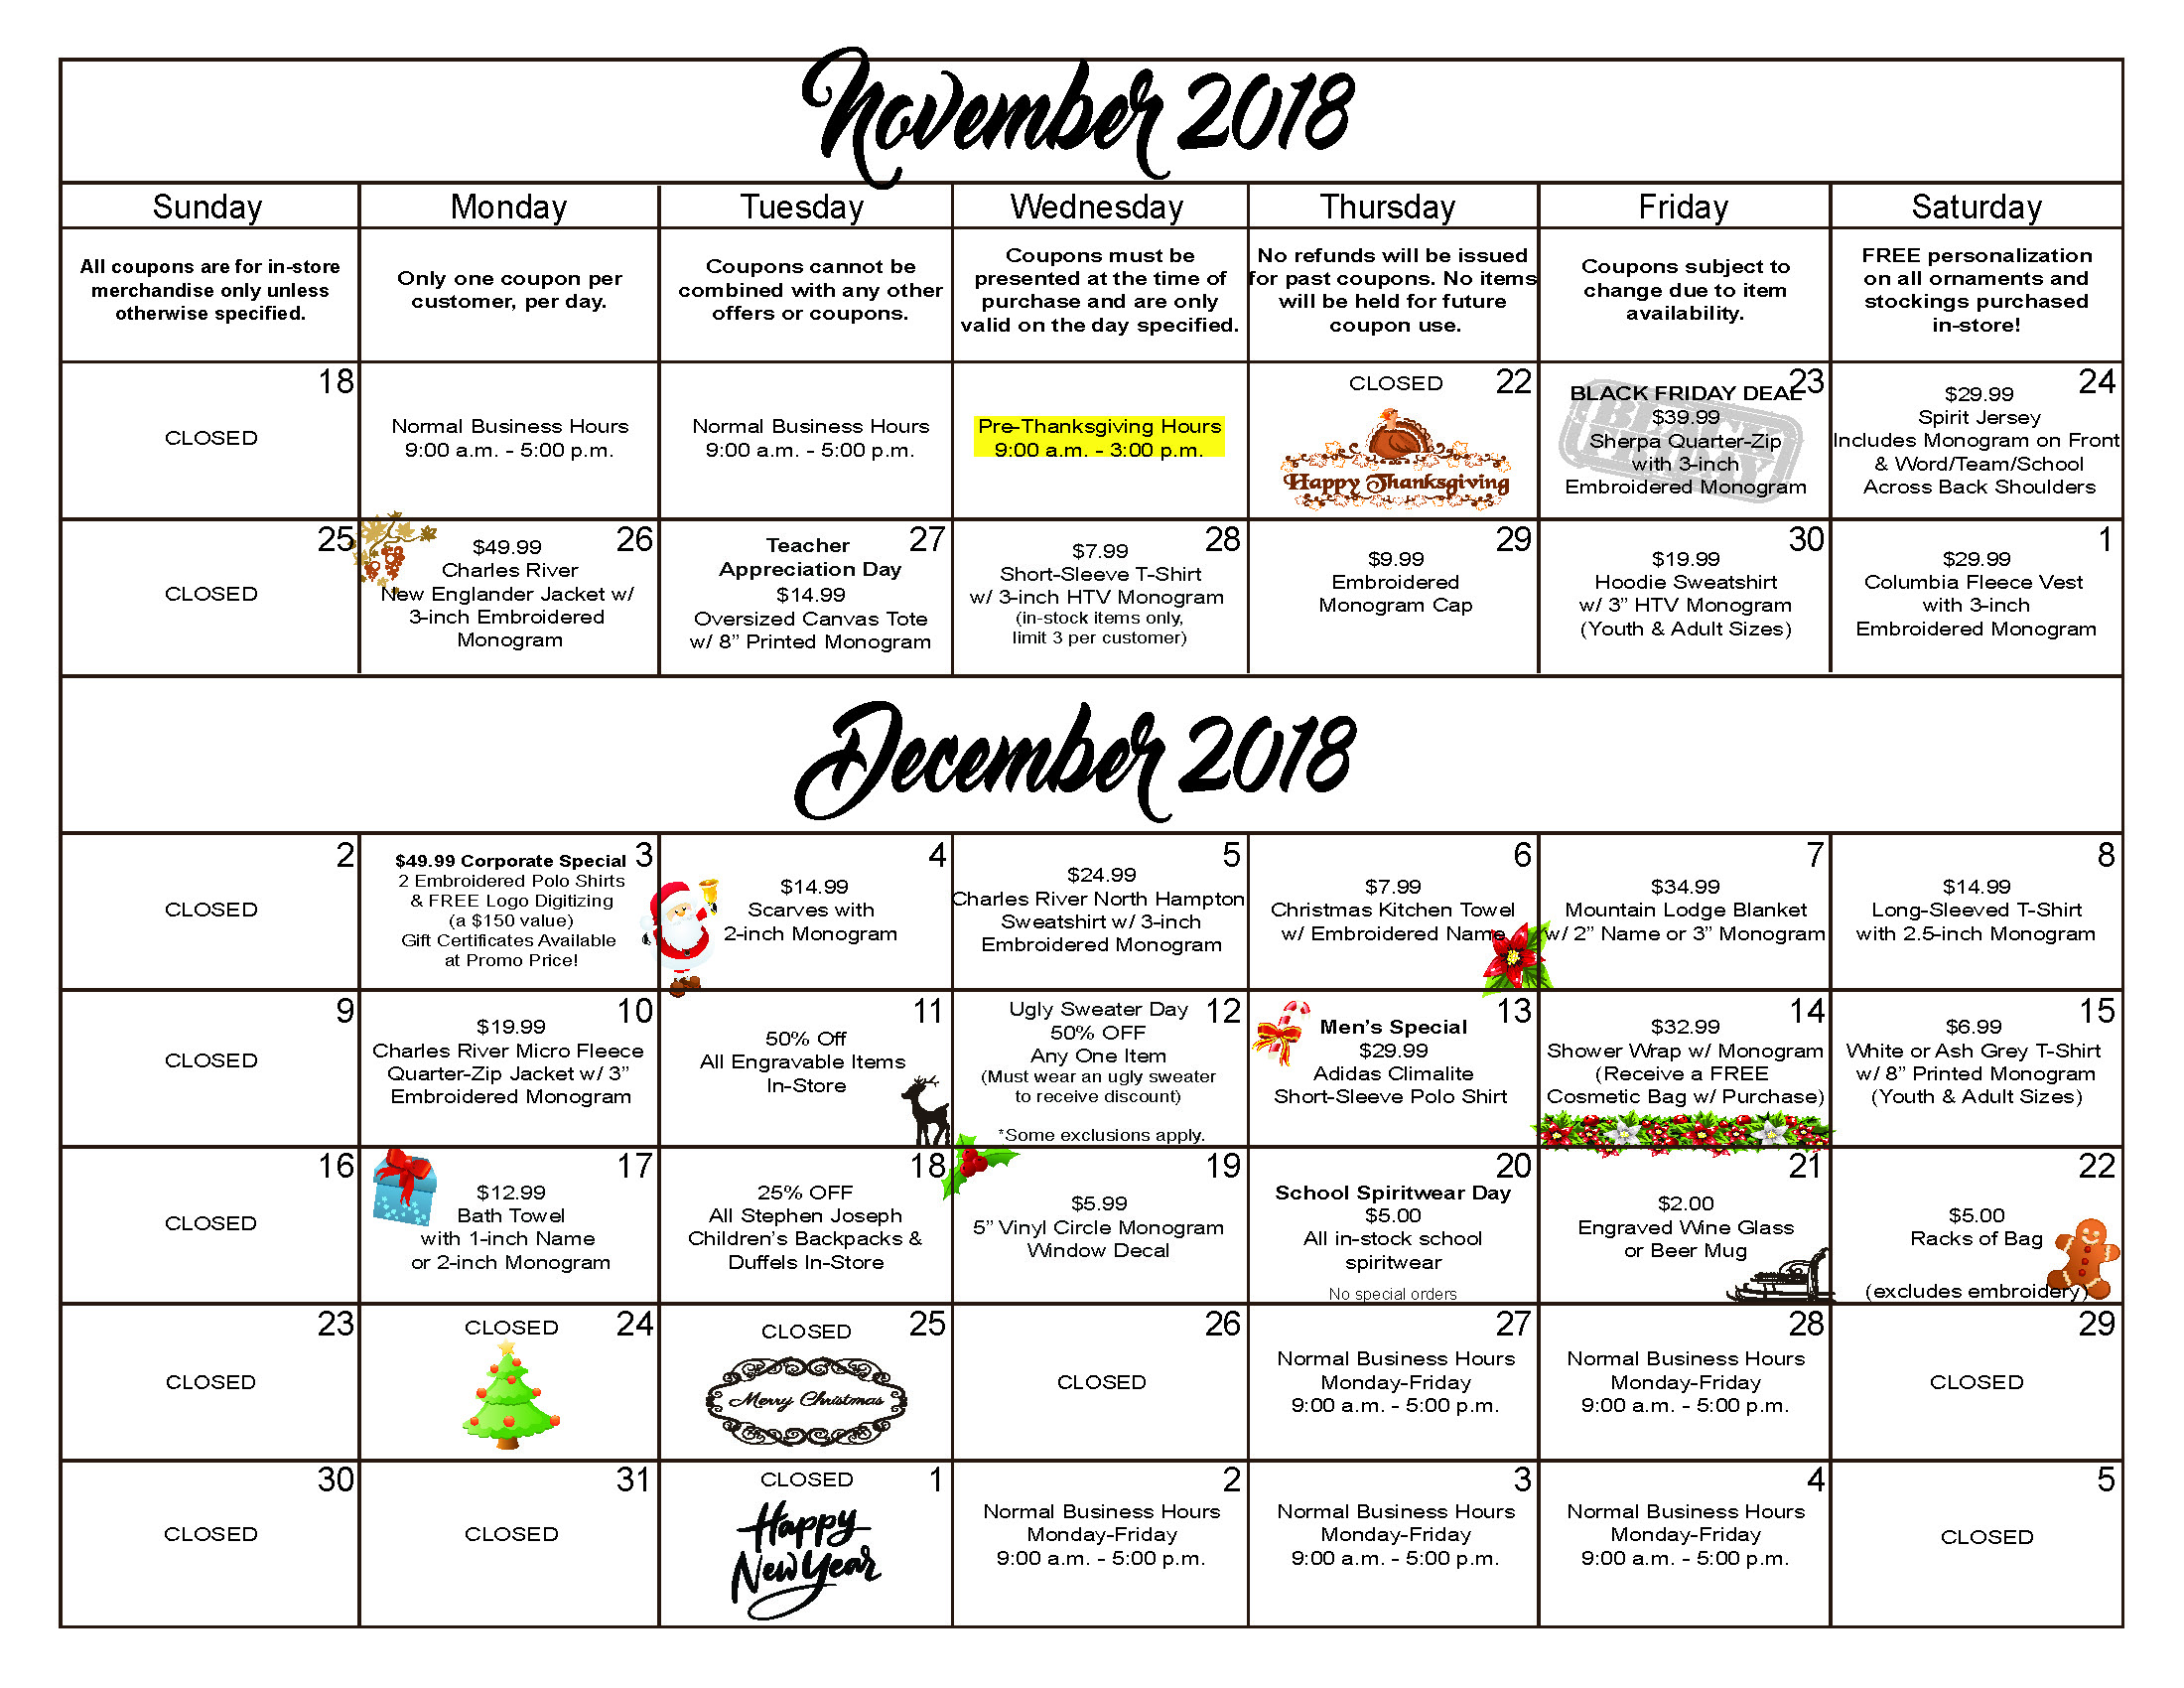 2018 Calendar of Coupons